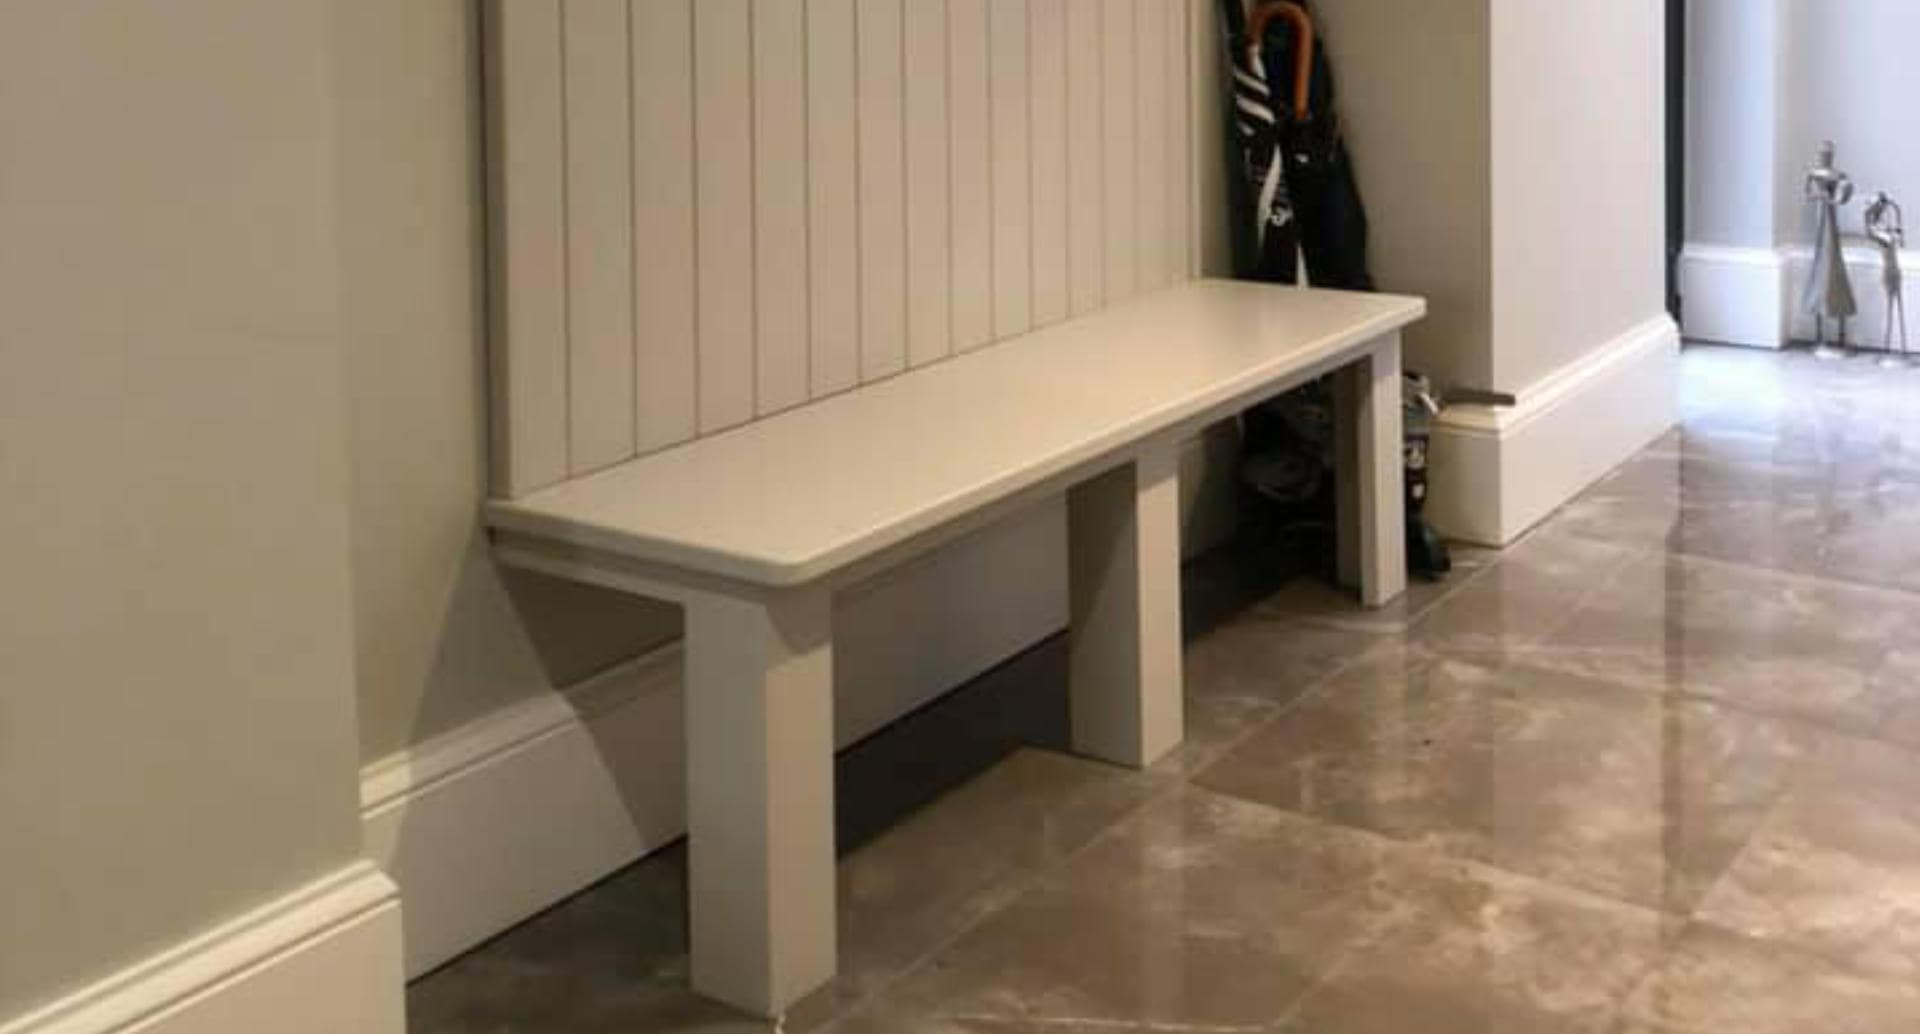 A bespoke, wooden bench with coat hangars in a hallway